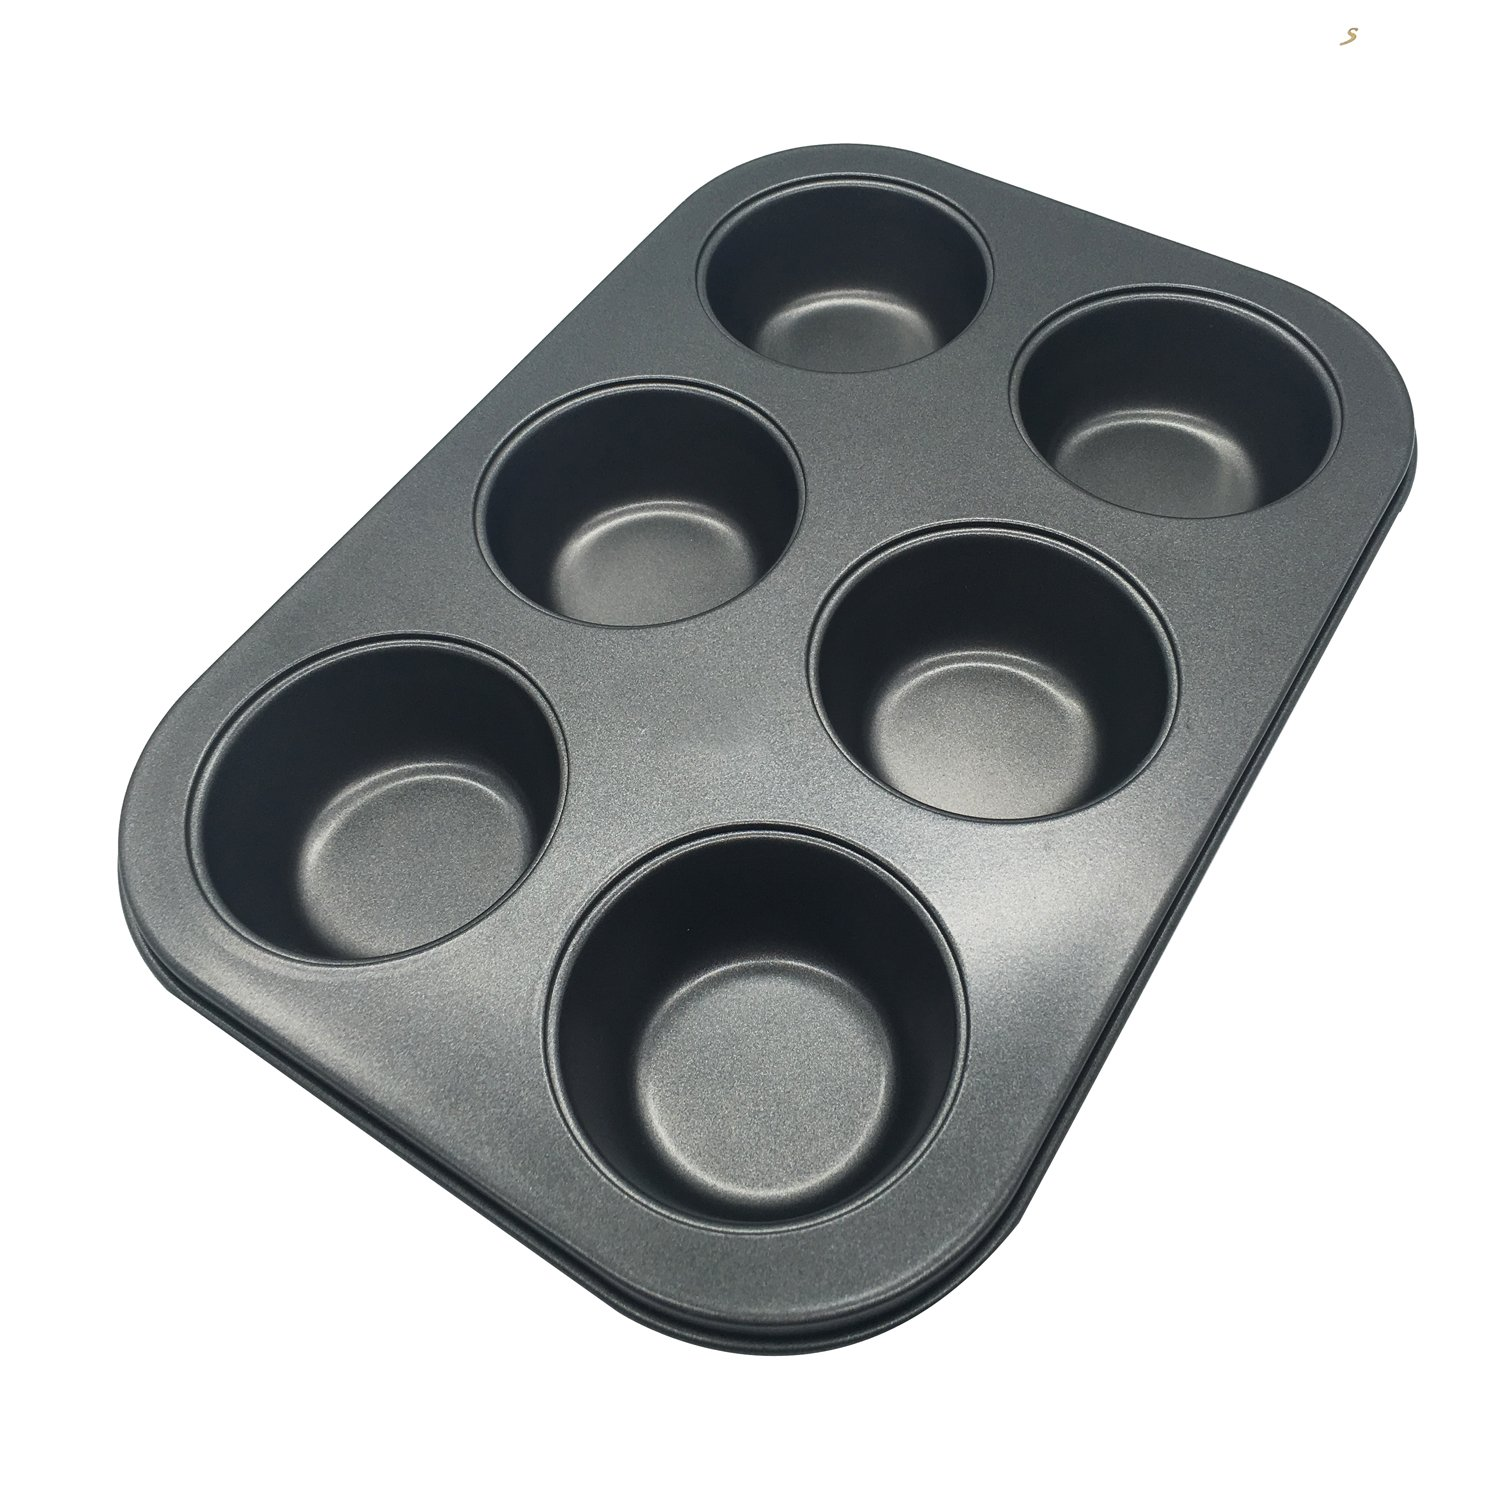 Perfect Results Nonstick 6-Cup Muffin Pan, Non-Stick Baking Pans, Easy to Clean and Perfect for Making Jumbo Muffins or Mini Cakes Kootips-1-4130